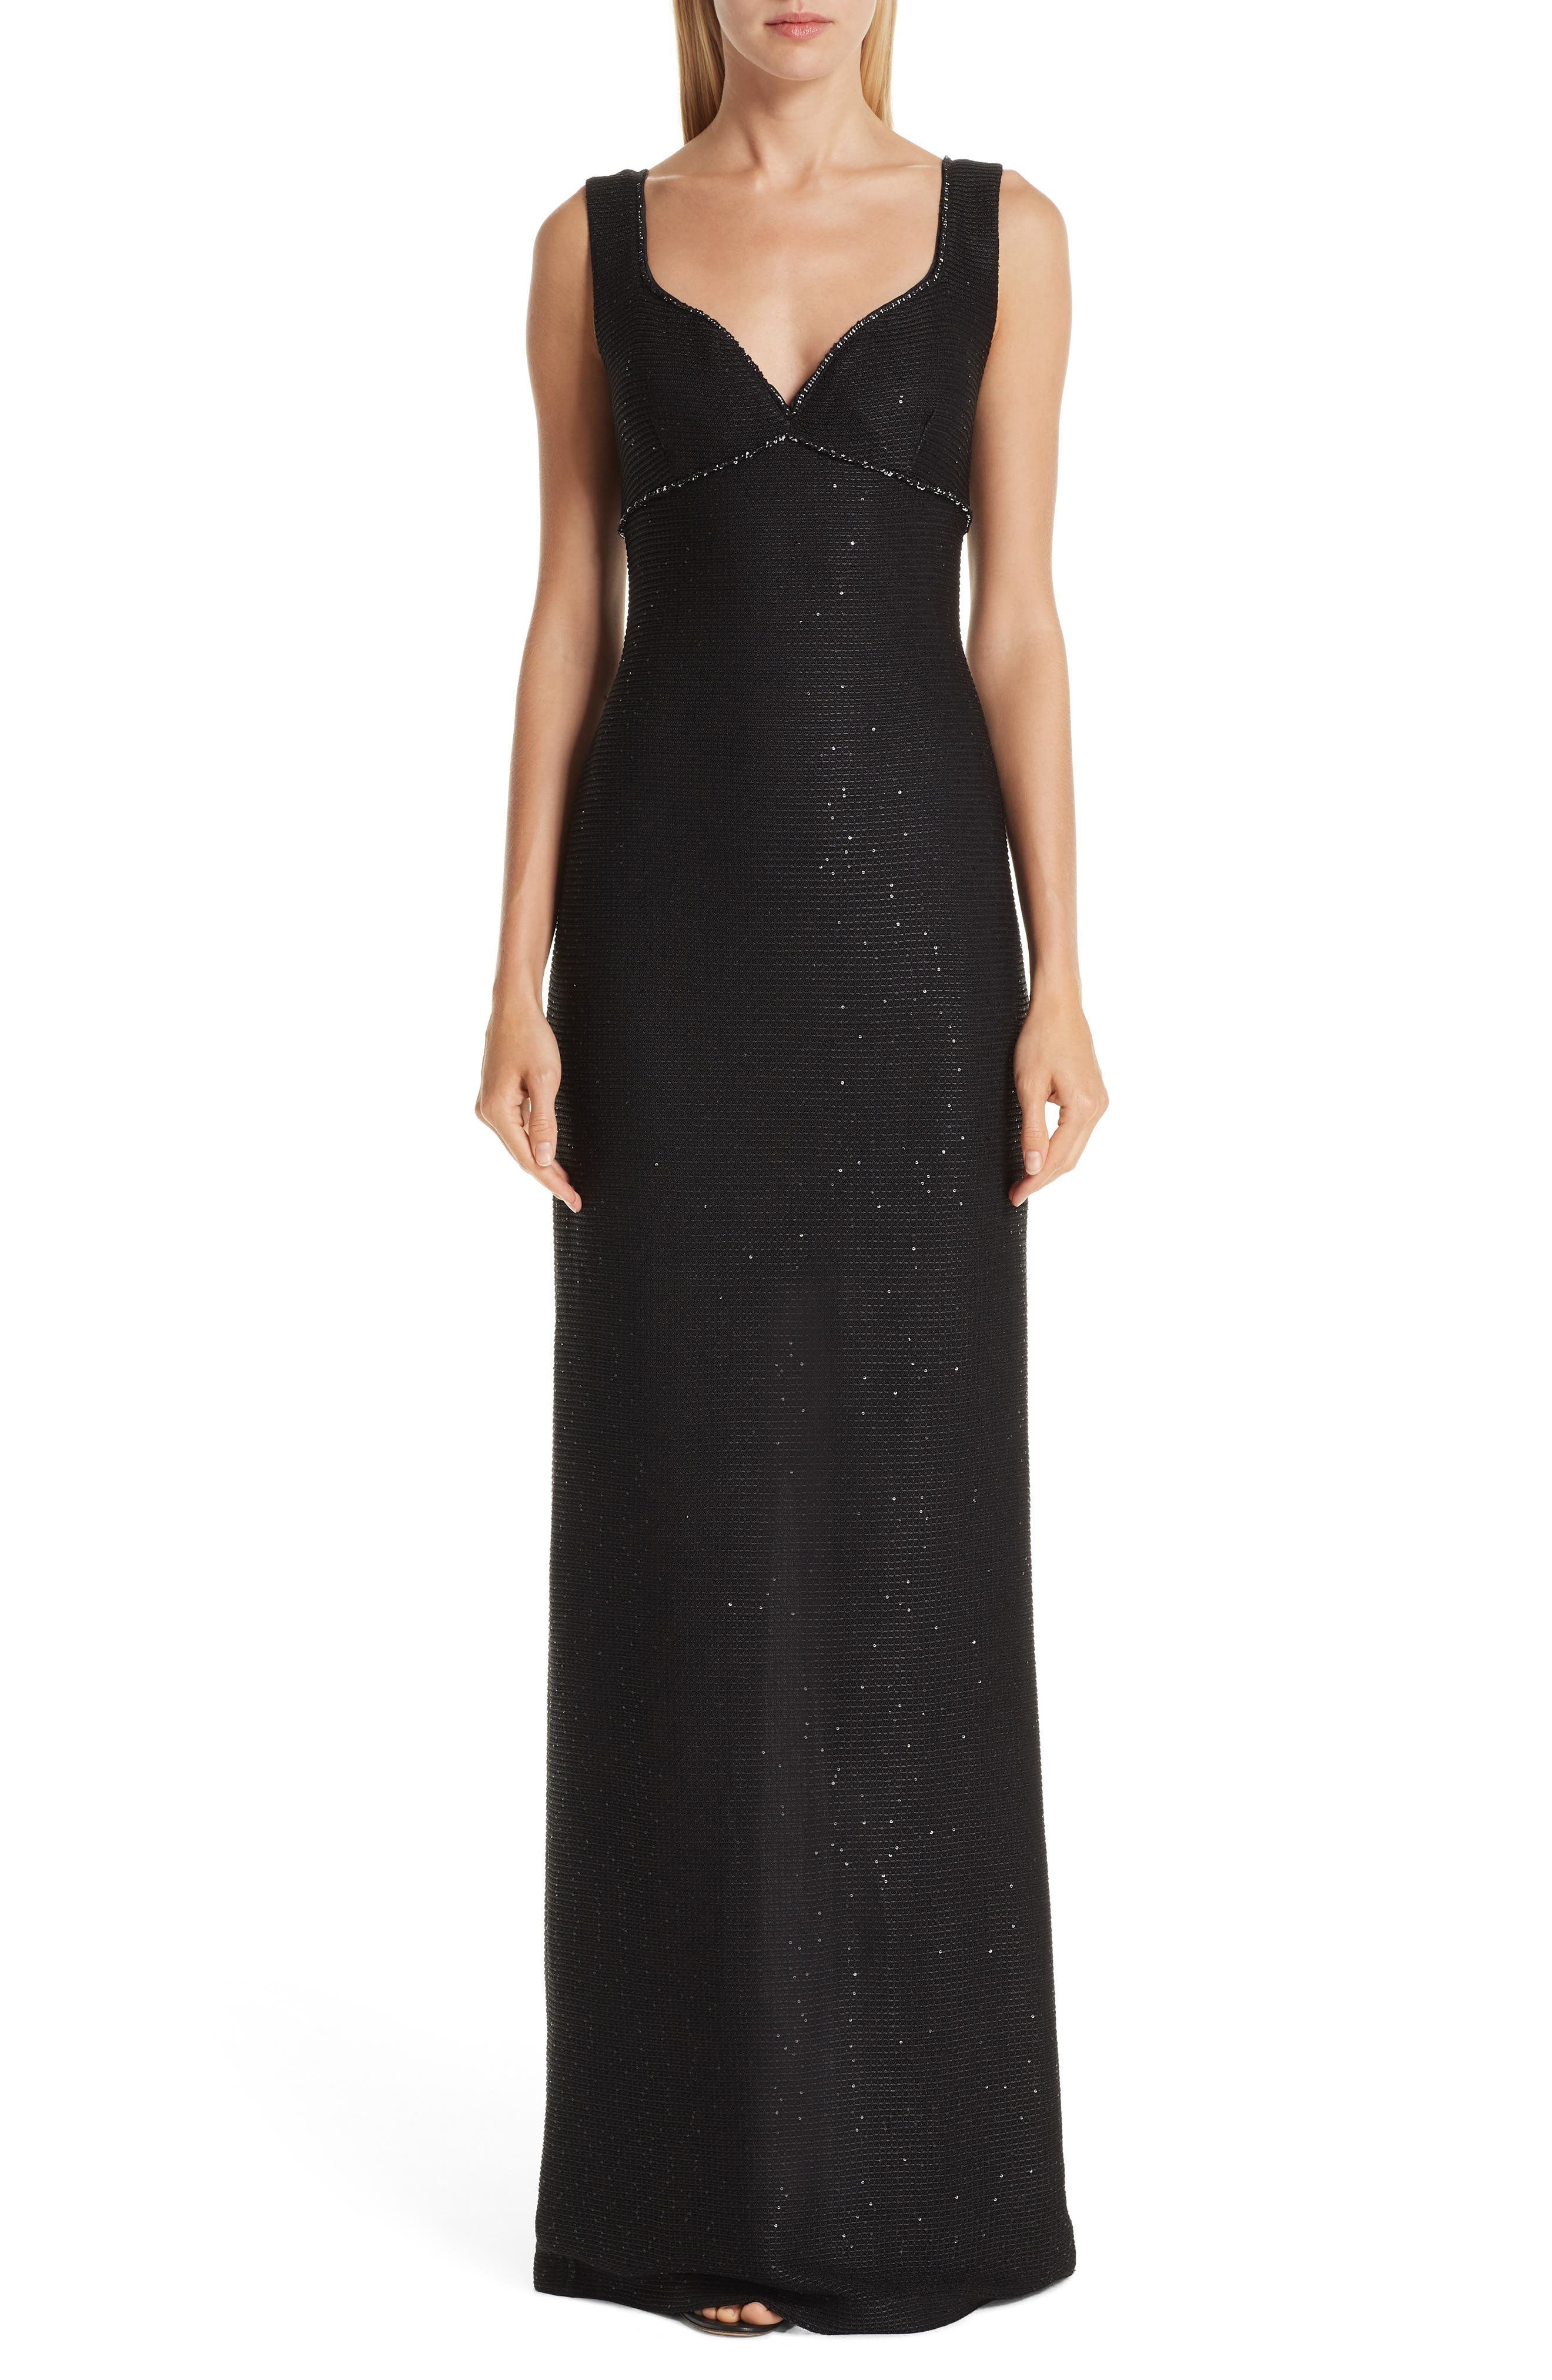 St. John Collection Links Sequin Knit Gown, Black